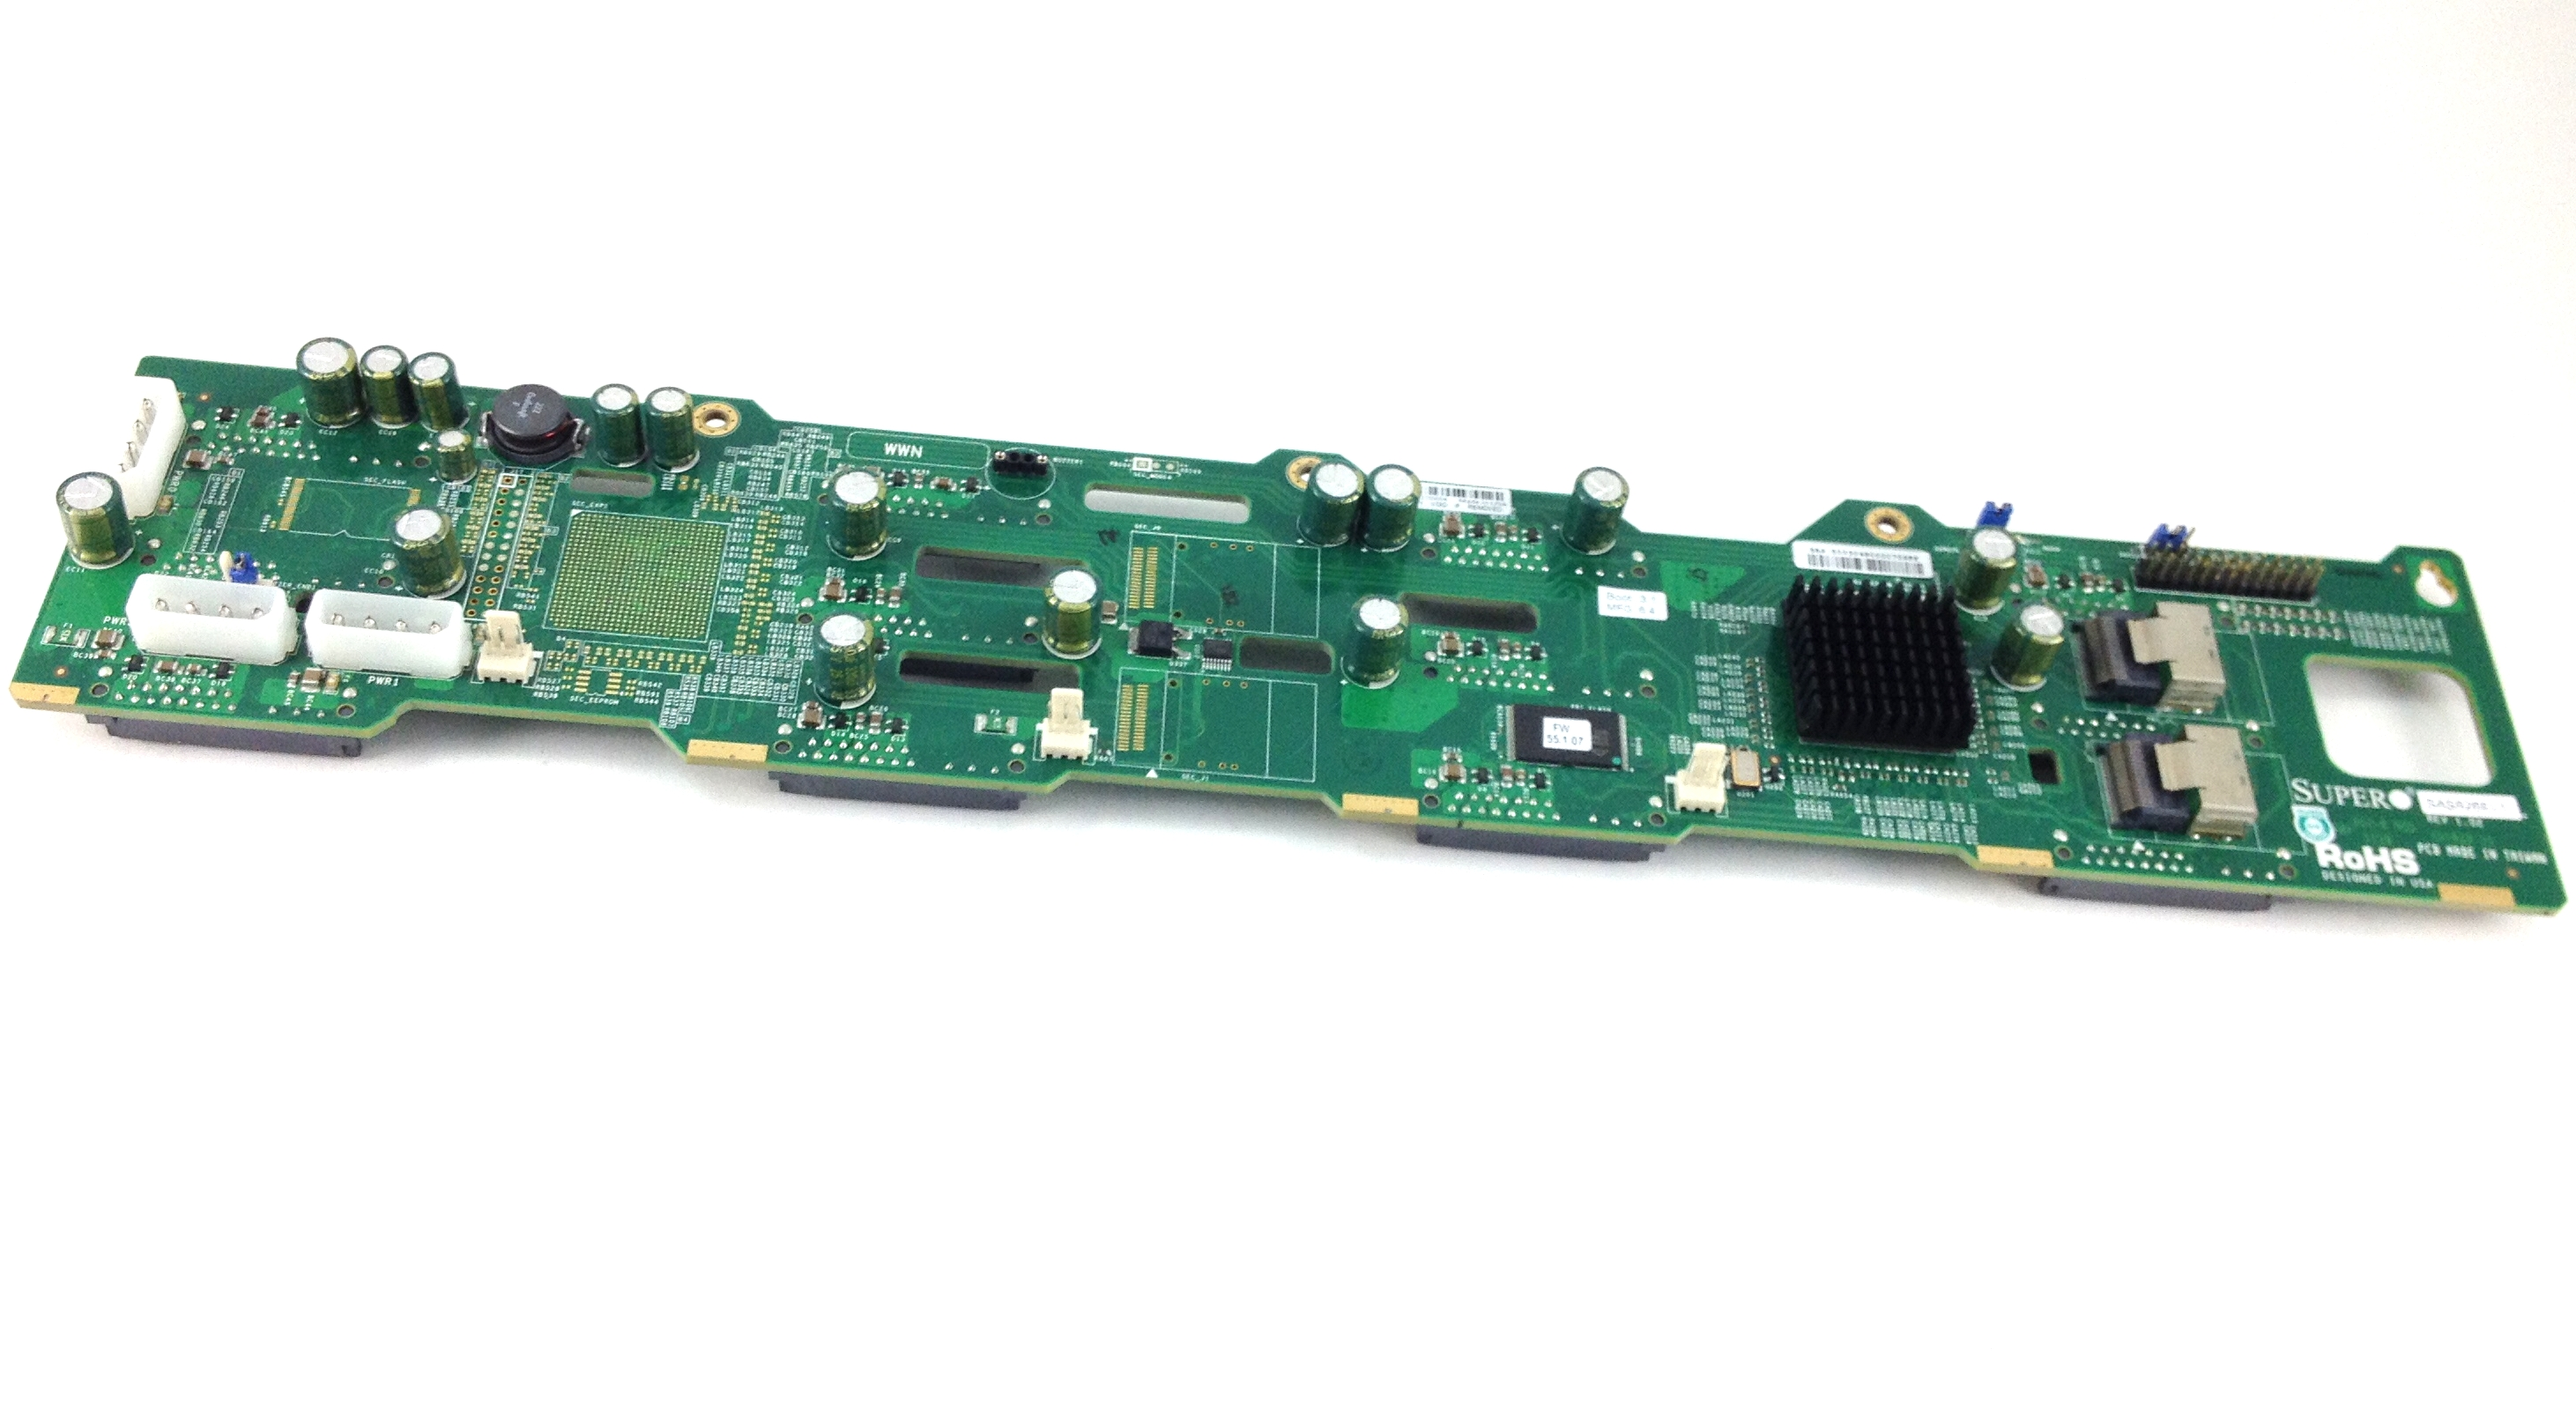 Supermicro SAS/SATA Hard Drive Array Expander Backplane (SAS826EL1)